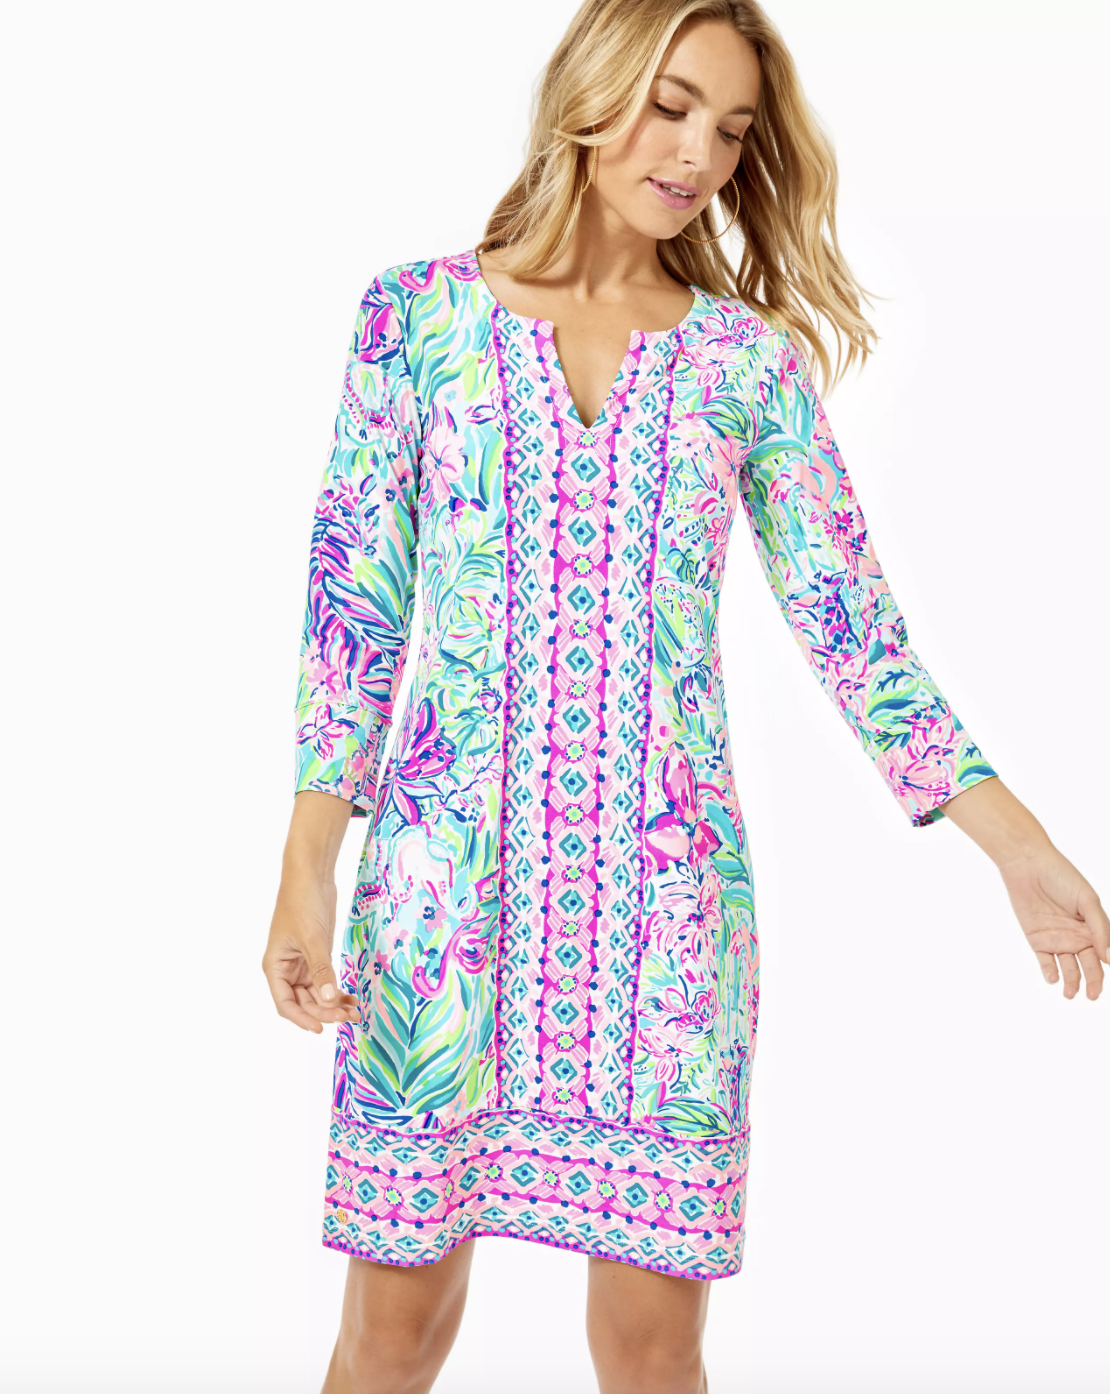 Chilly Lilly Dress